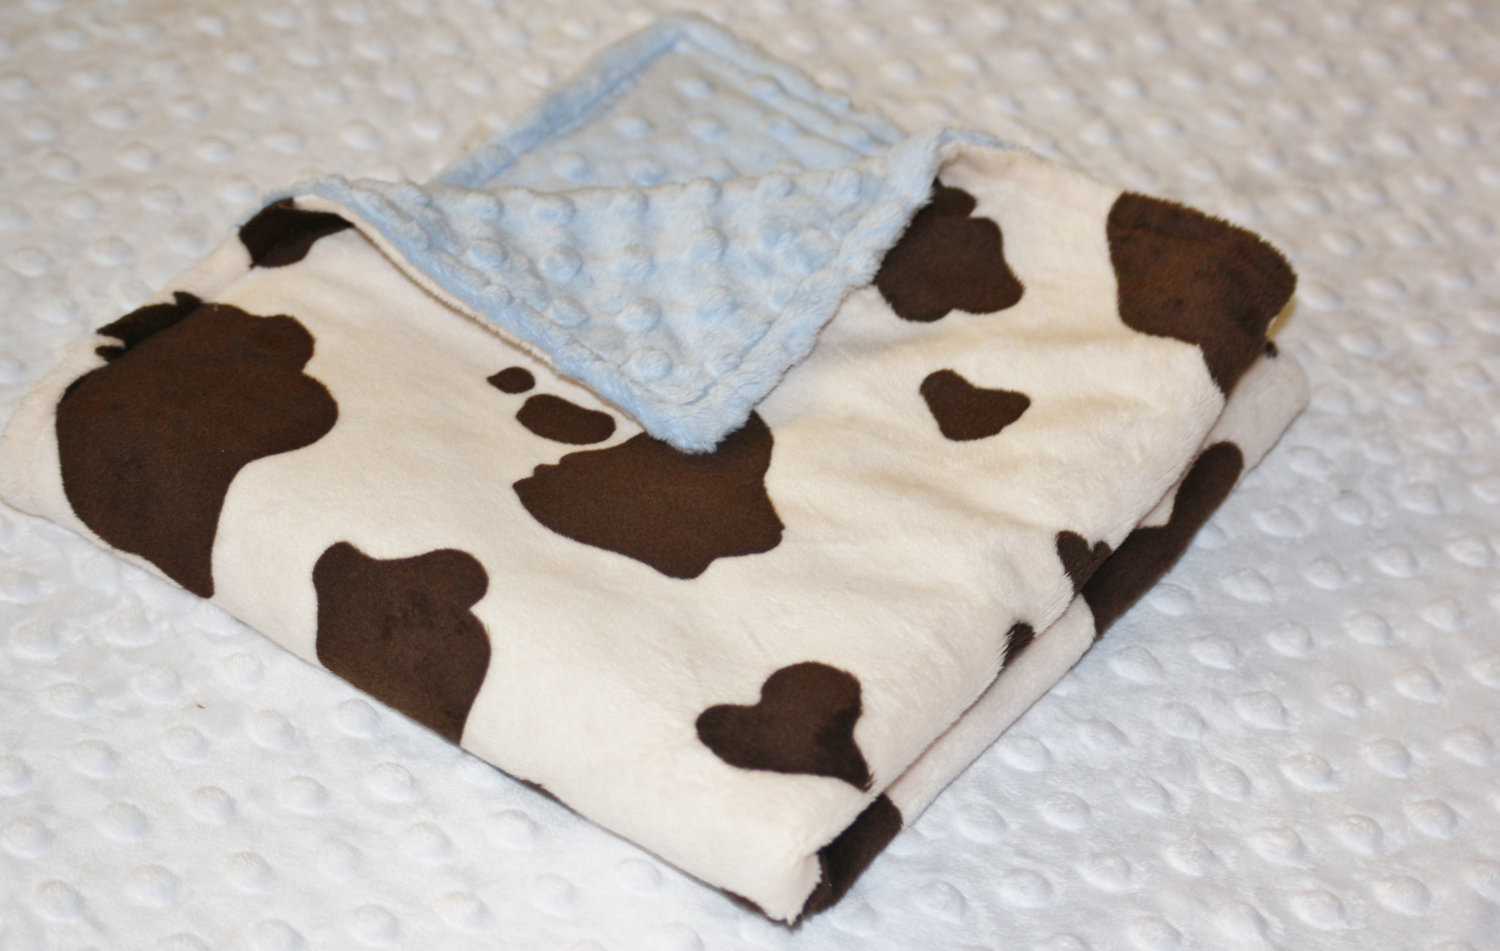 Minky Blanket Toddler Blanket Baby Blanket Child Blanket Cream And Brown Cow Print Minky With Baby Blue Dot Minky Blankets Swaddling Baby